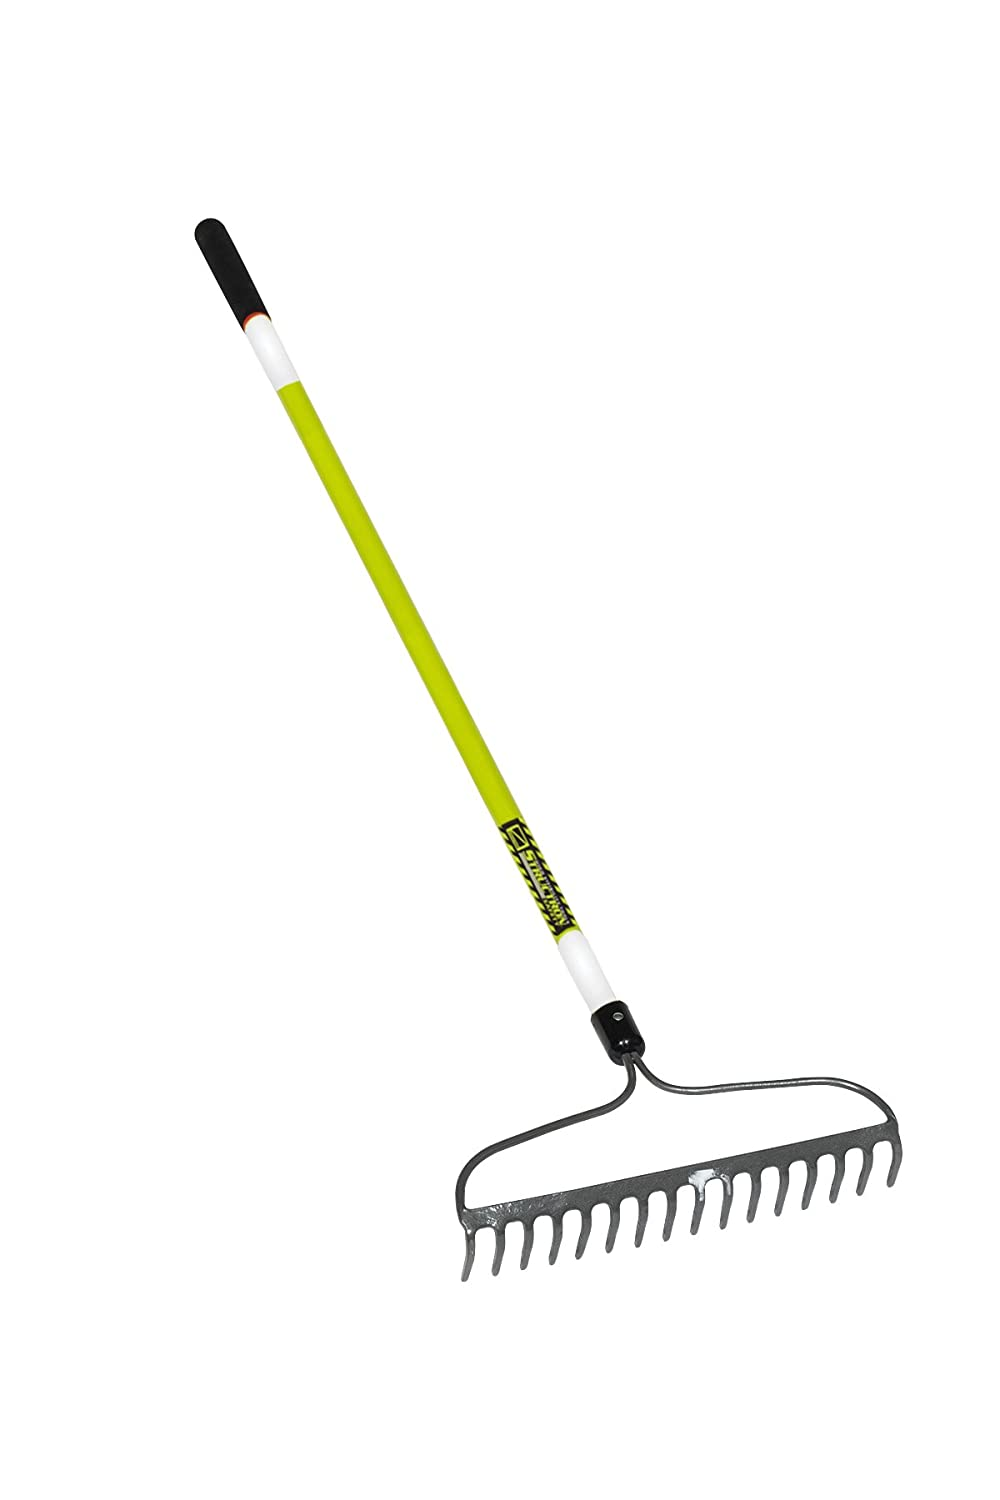 Seymour MIDWESTStructron 49754 Bow Rake with 3M Retroreflective Tape 16 in Steel Head